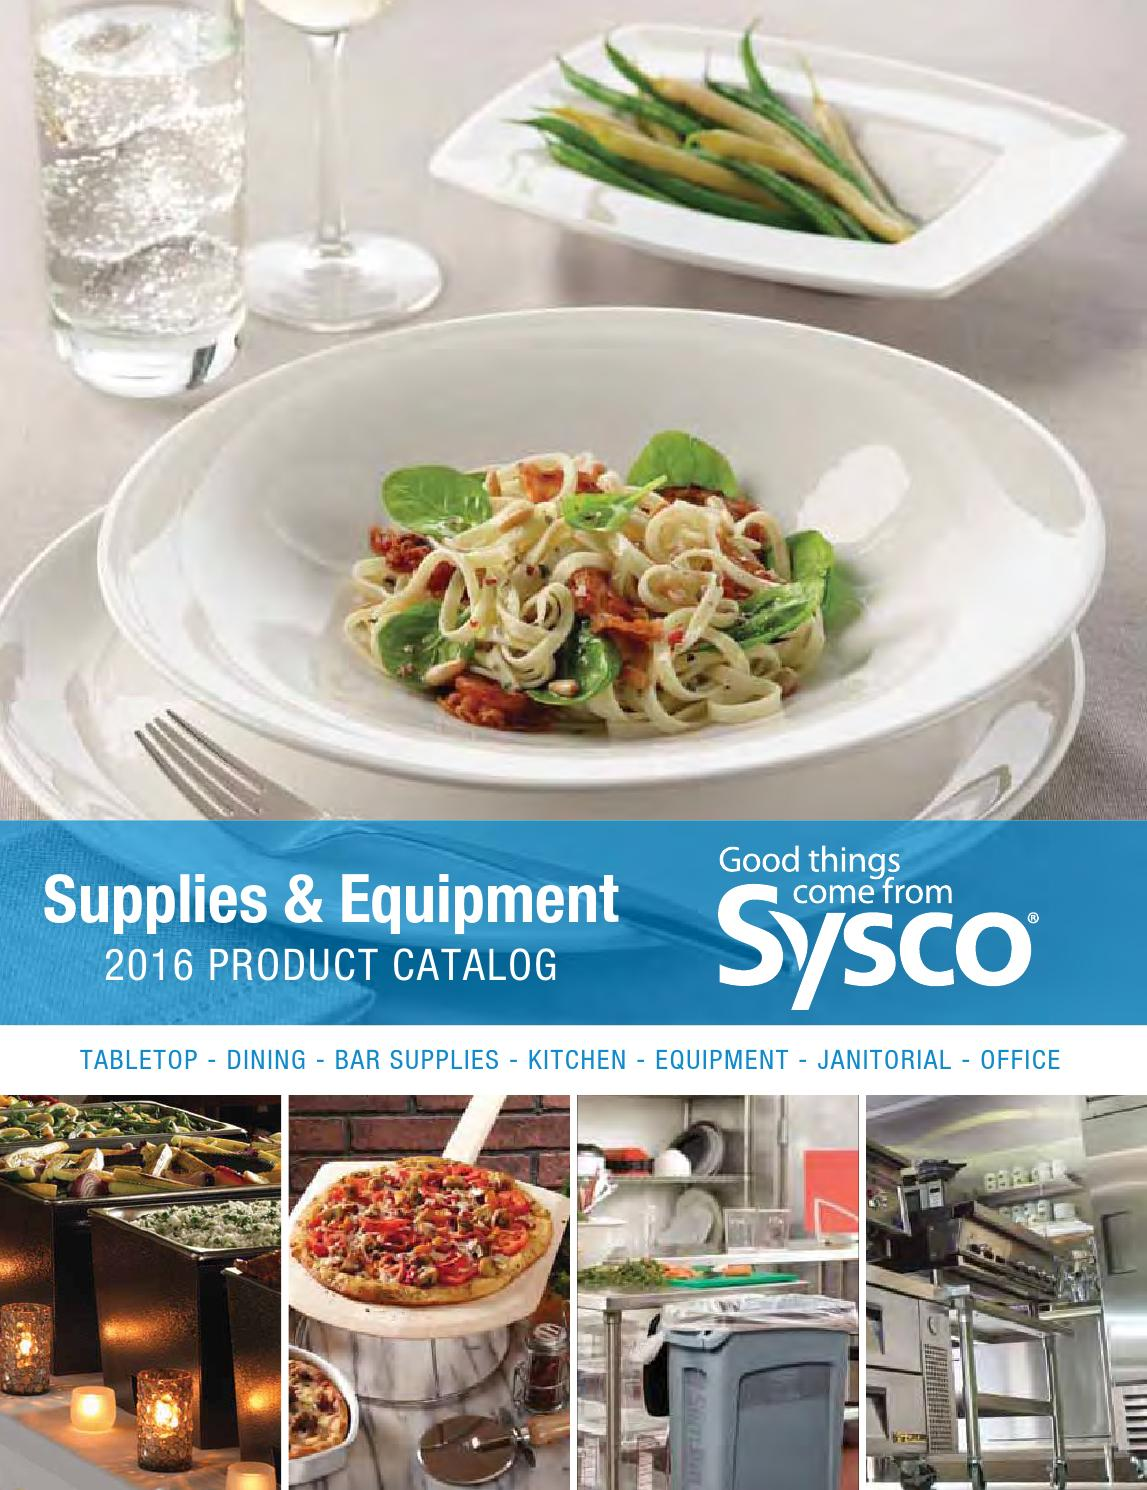 Sysco Supplies & Equipment 2016 Product Catalog by Jessica Chouprov ...